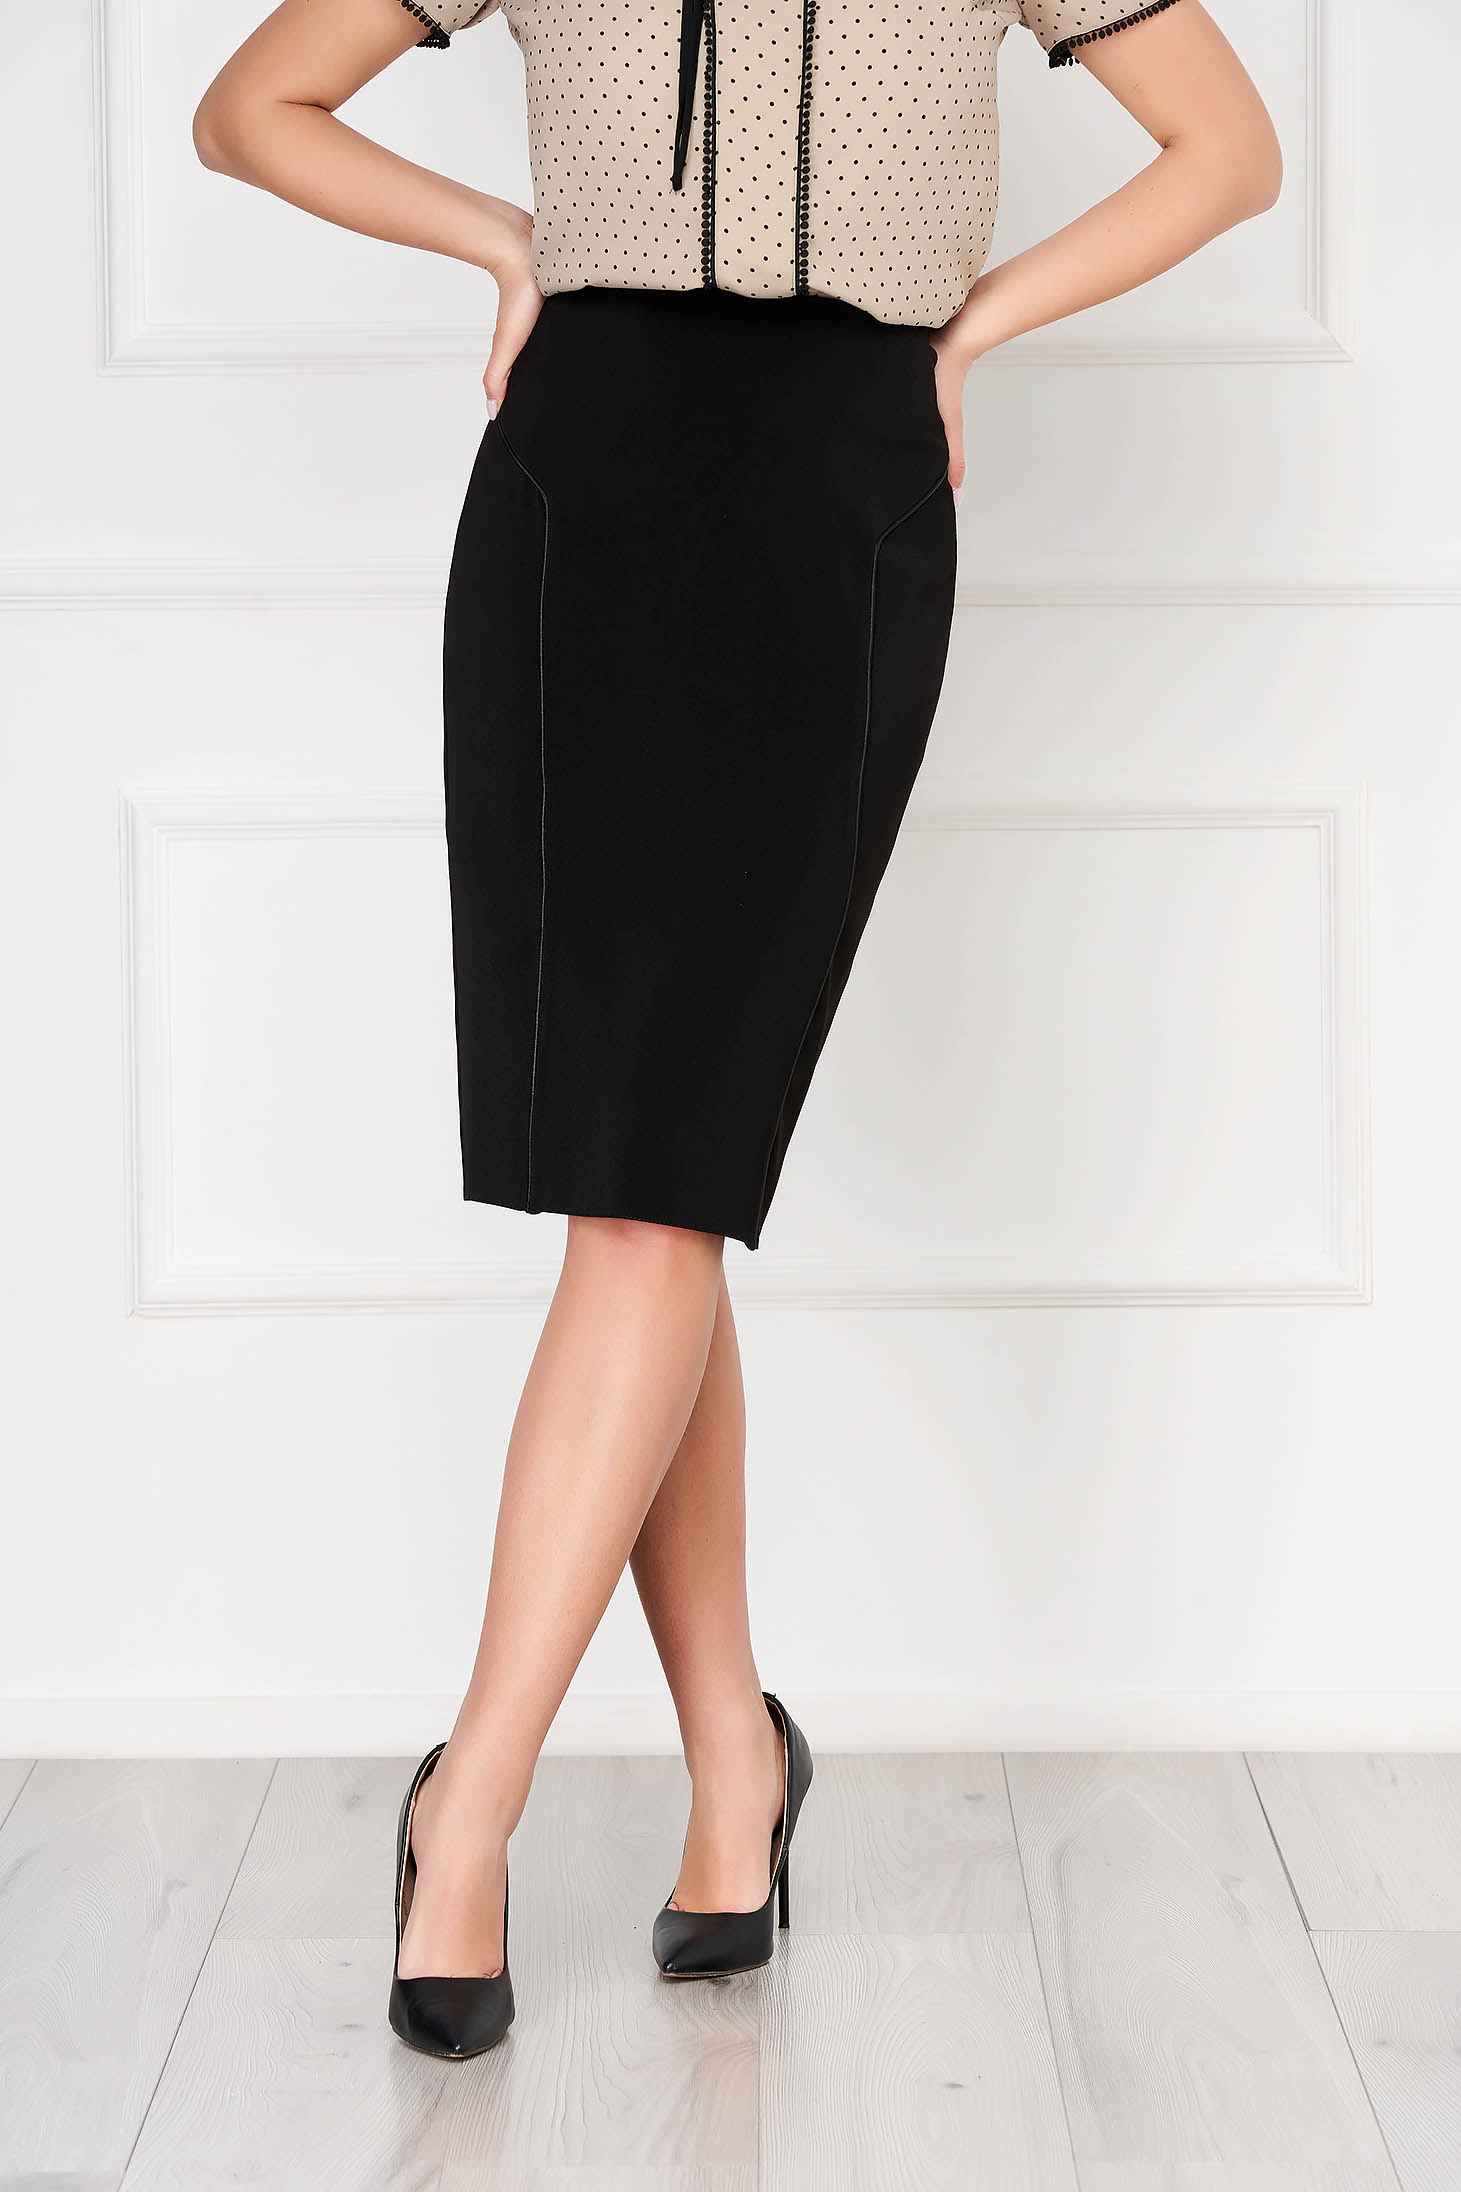 Black skirt office midi pencil cloth with faux leather details